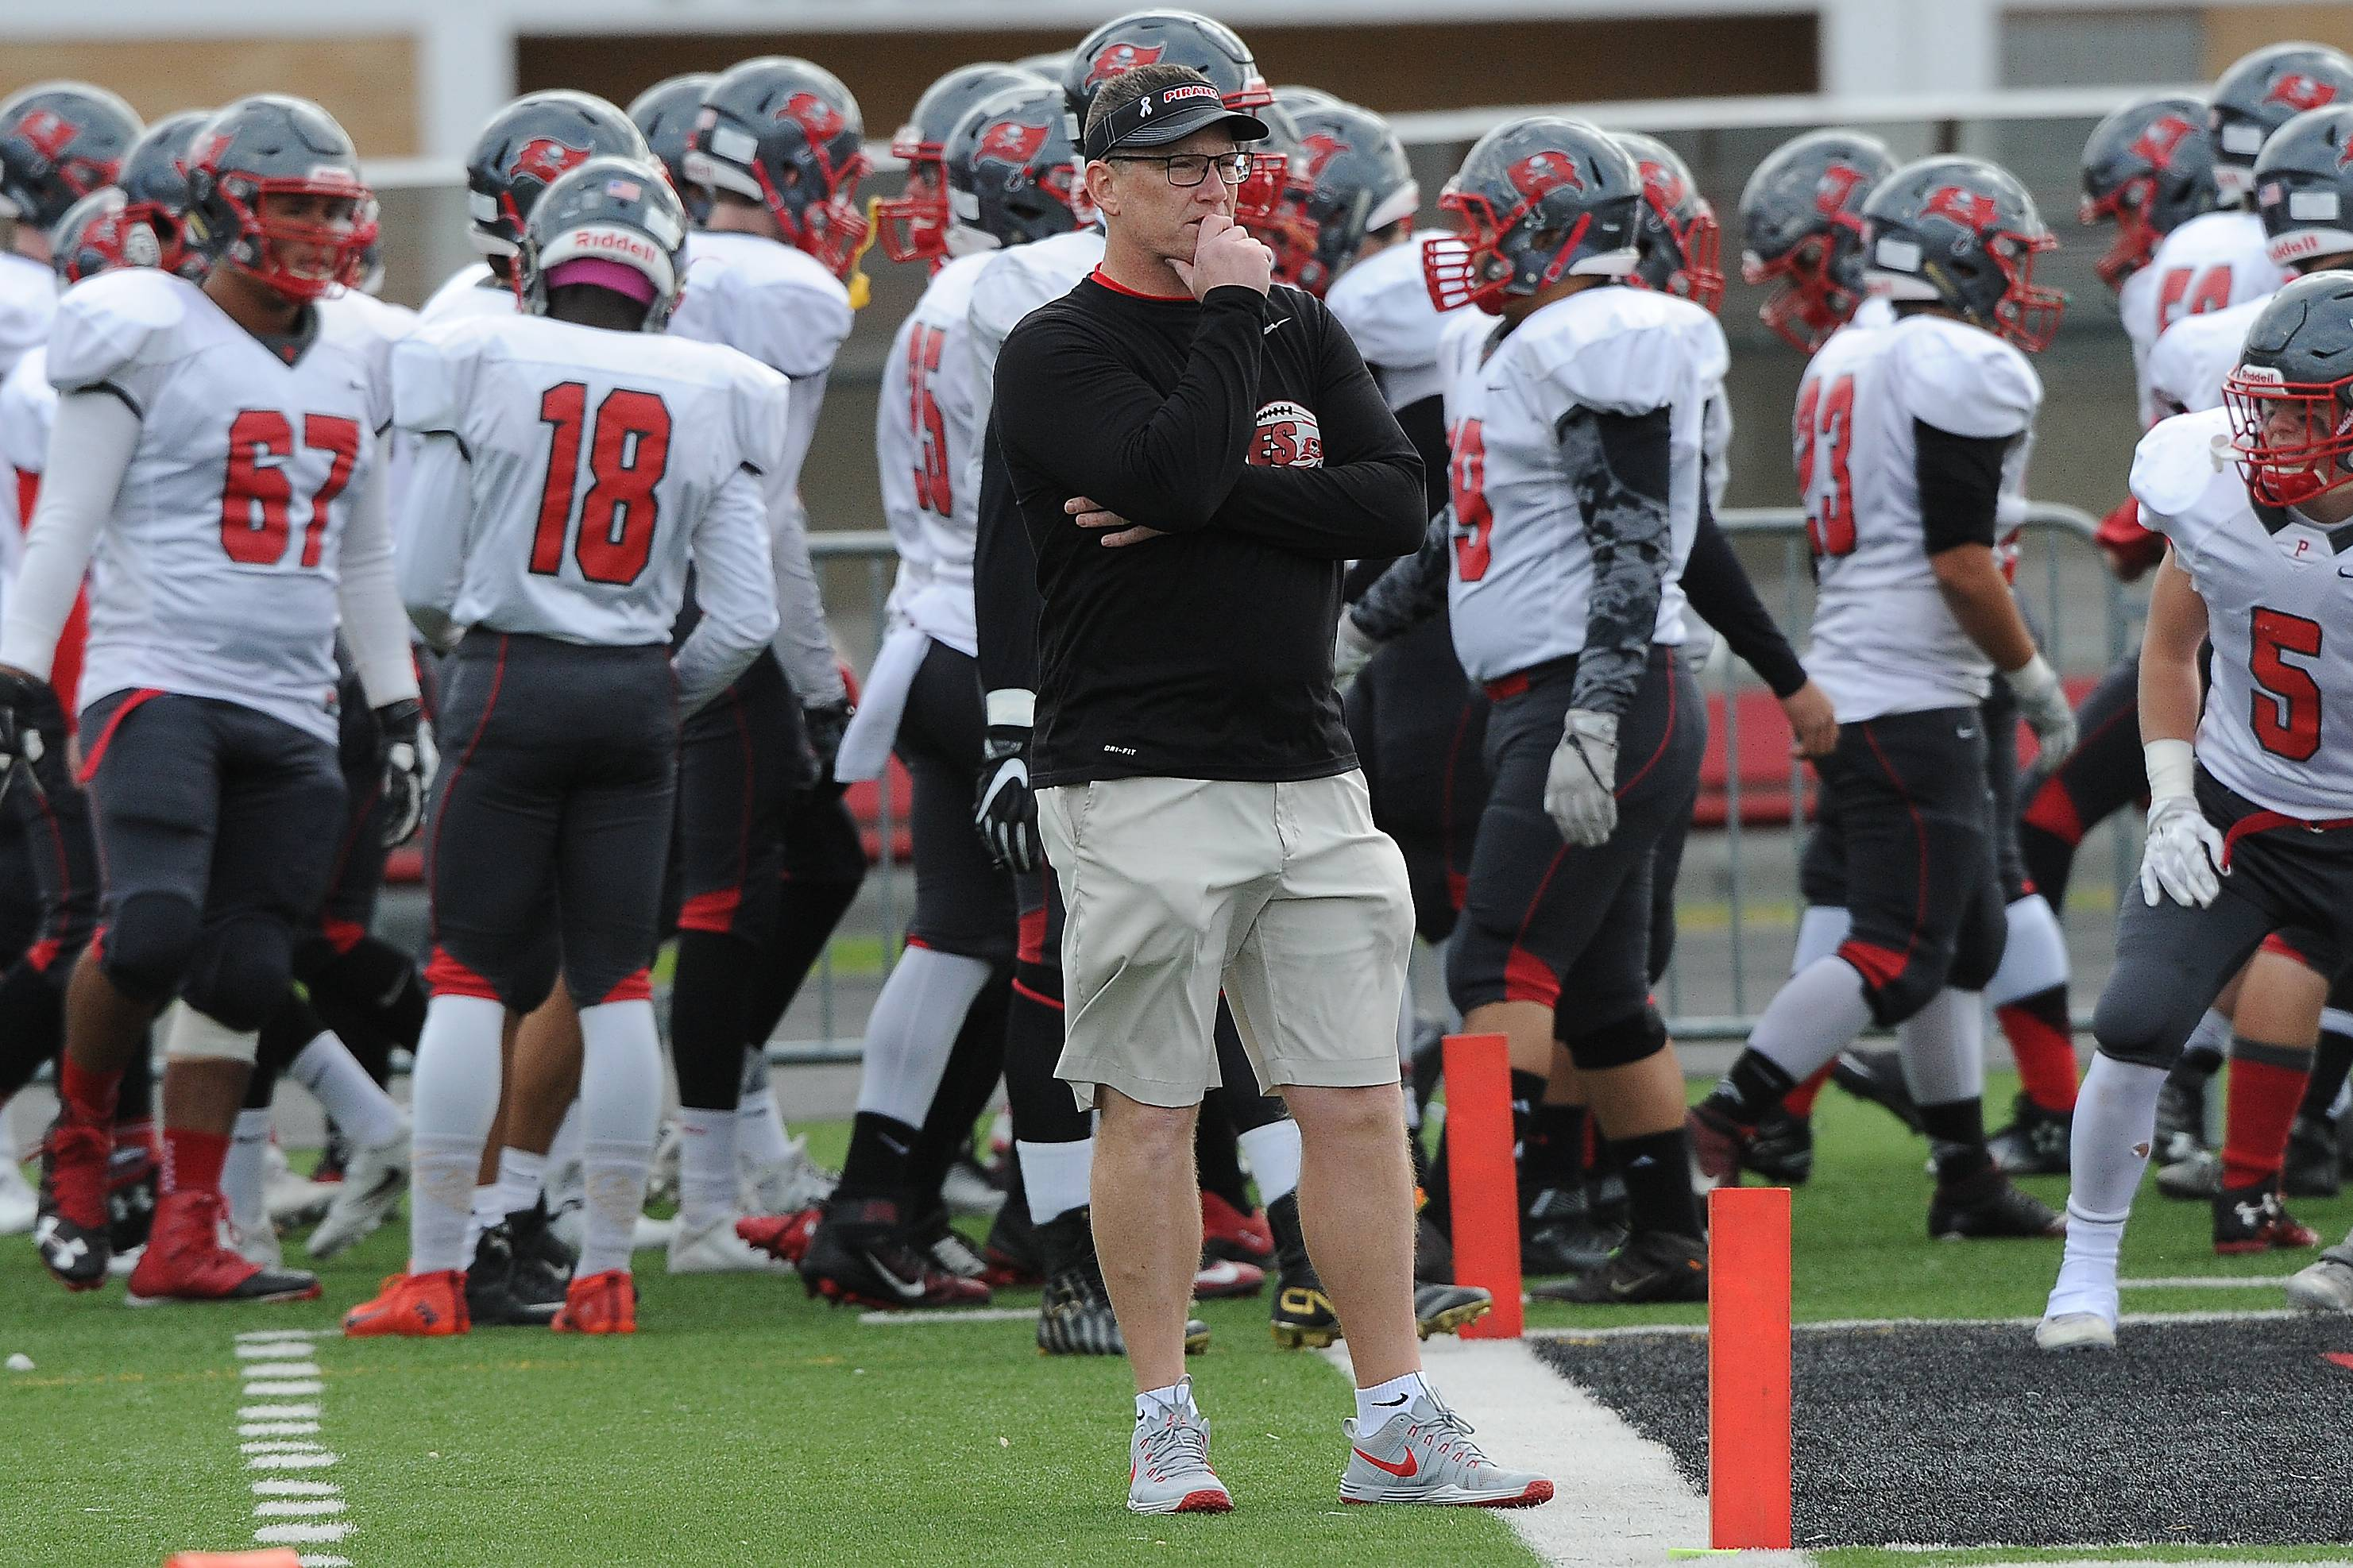 Assistant coach Kevin Garner braved the elements in Palatine's 28-14 loss to Maine South in the Clas 8A state semifinals on Saturday.